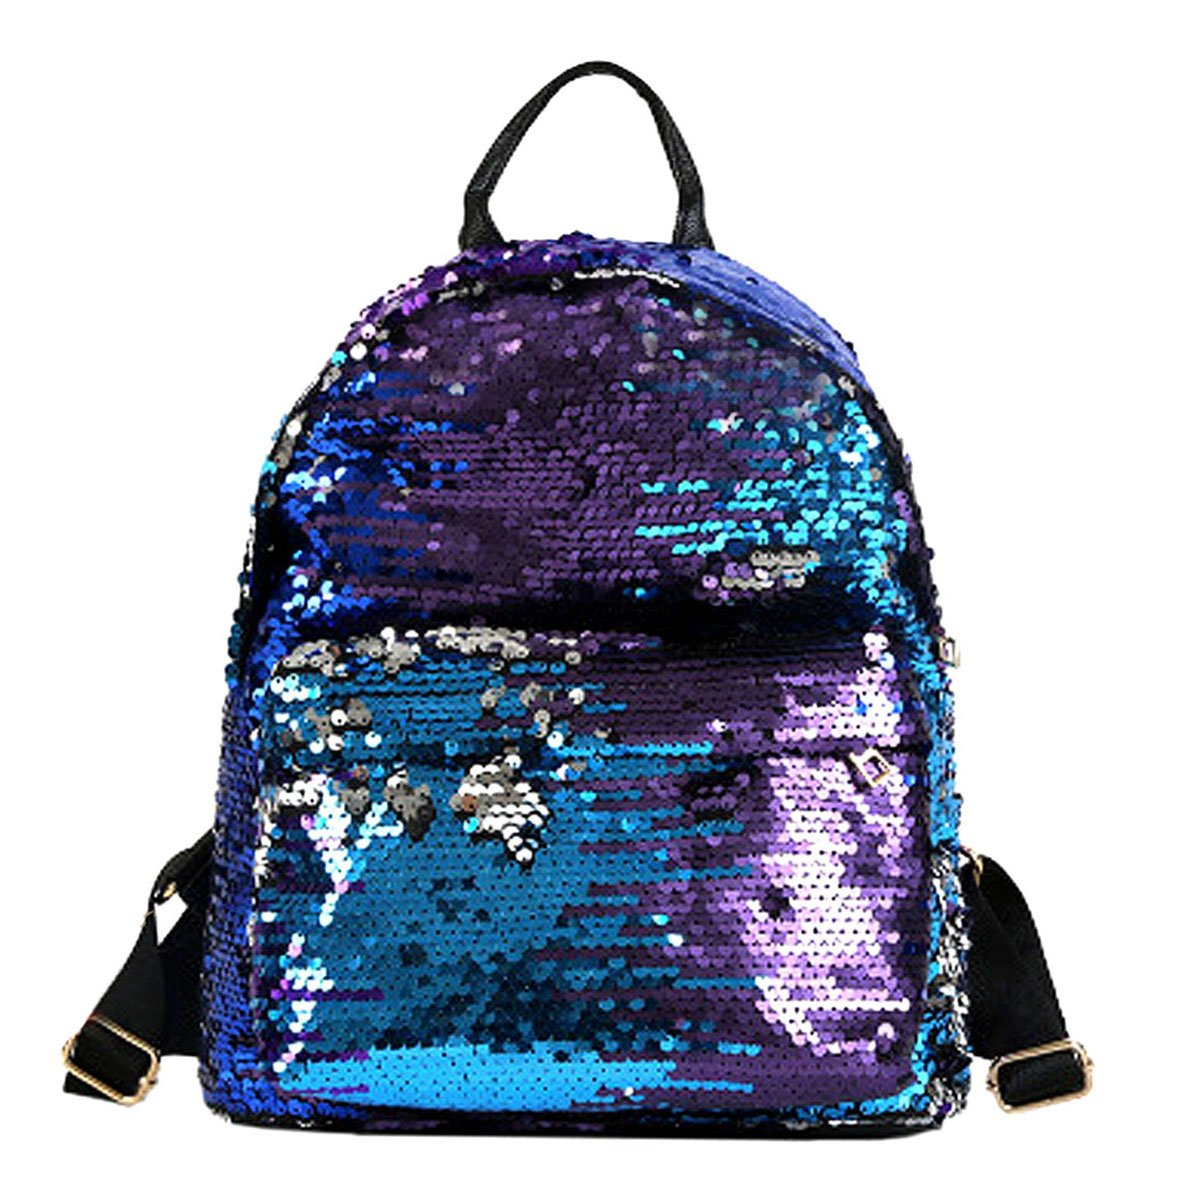 bluee ZLMBAGUS Girl Fashion Sequin Backpack Shiny School Travel Daypack Satchel